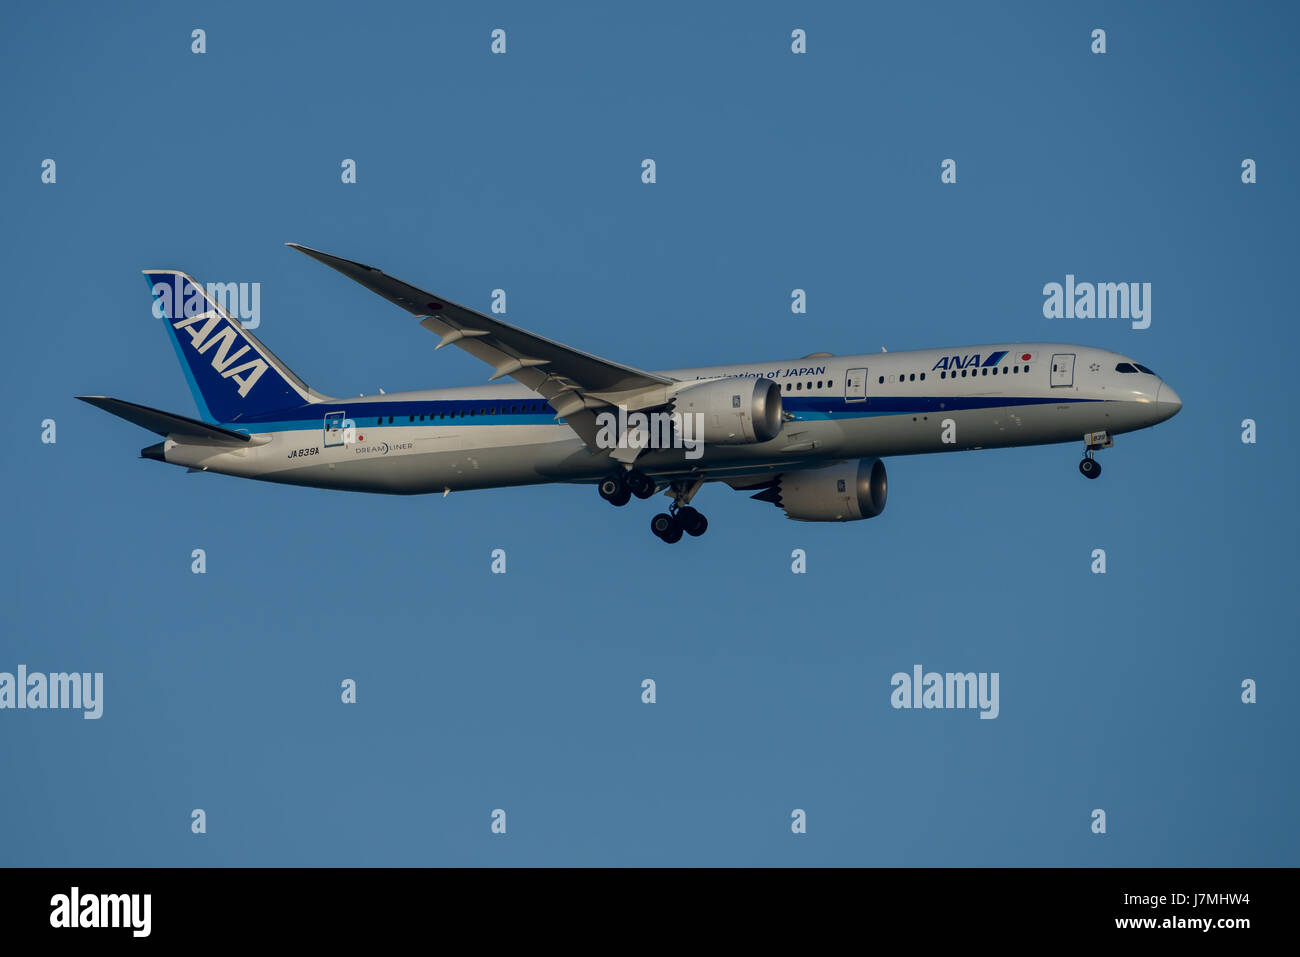 ANA Airlines Boeing 787 Dreamliner on Final approach to Sydney Airport on Tuesday 23 May 2017 - Stock Image